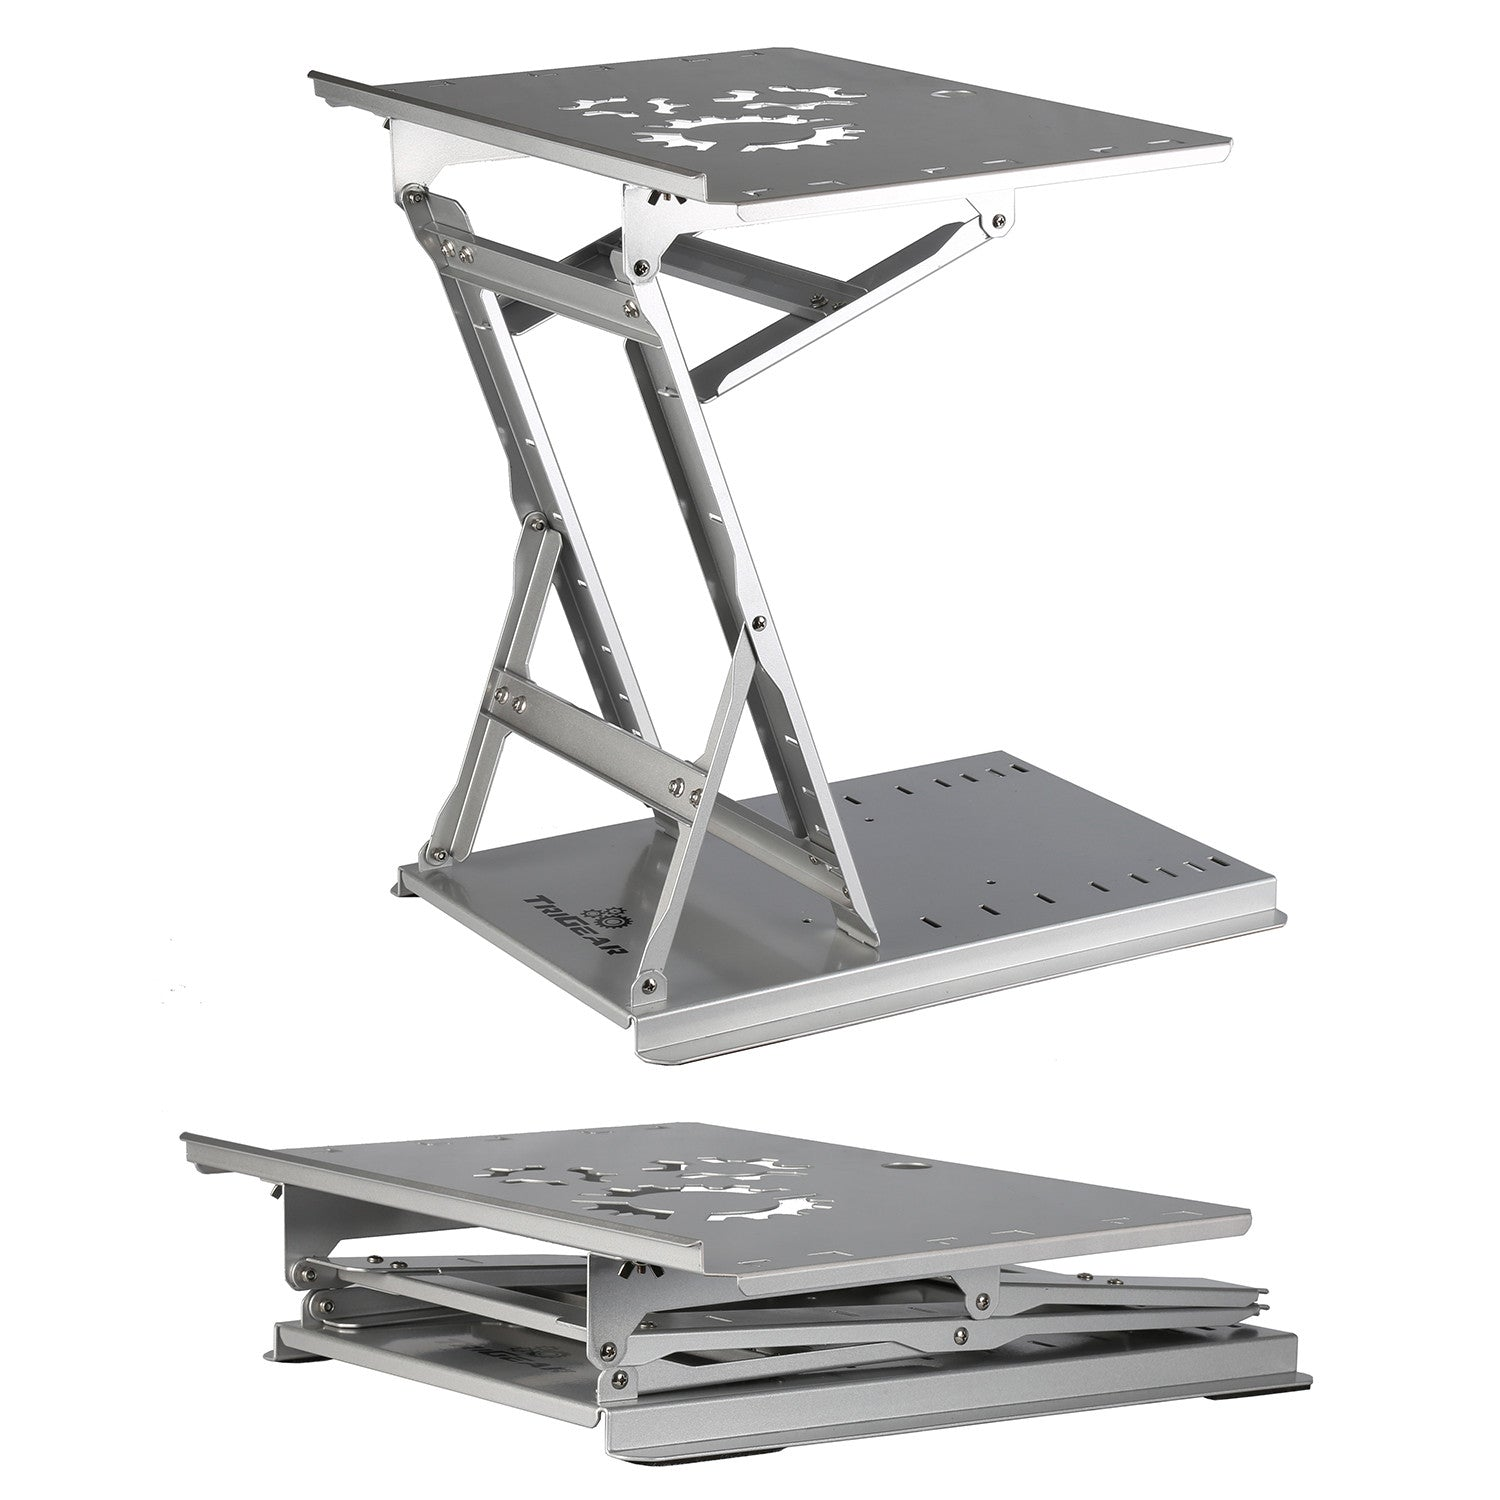 ... TriGear Premier 81 Adjustable Height U0026 Angle Options Laptop Desk Stand  W/ Over 100LBS Capacity ...